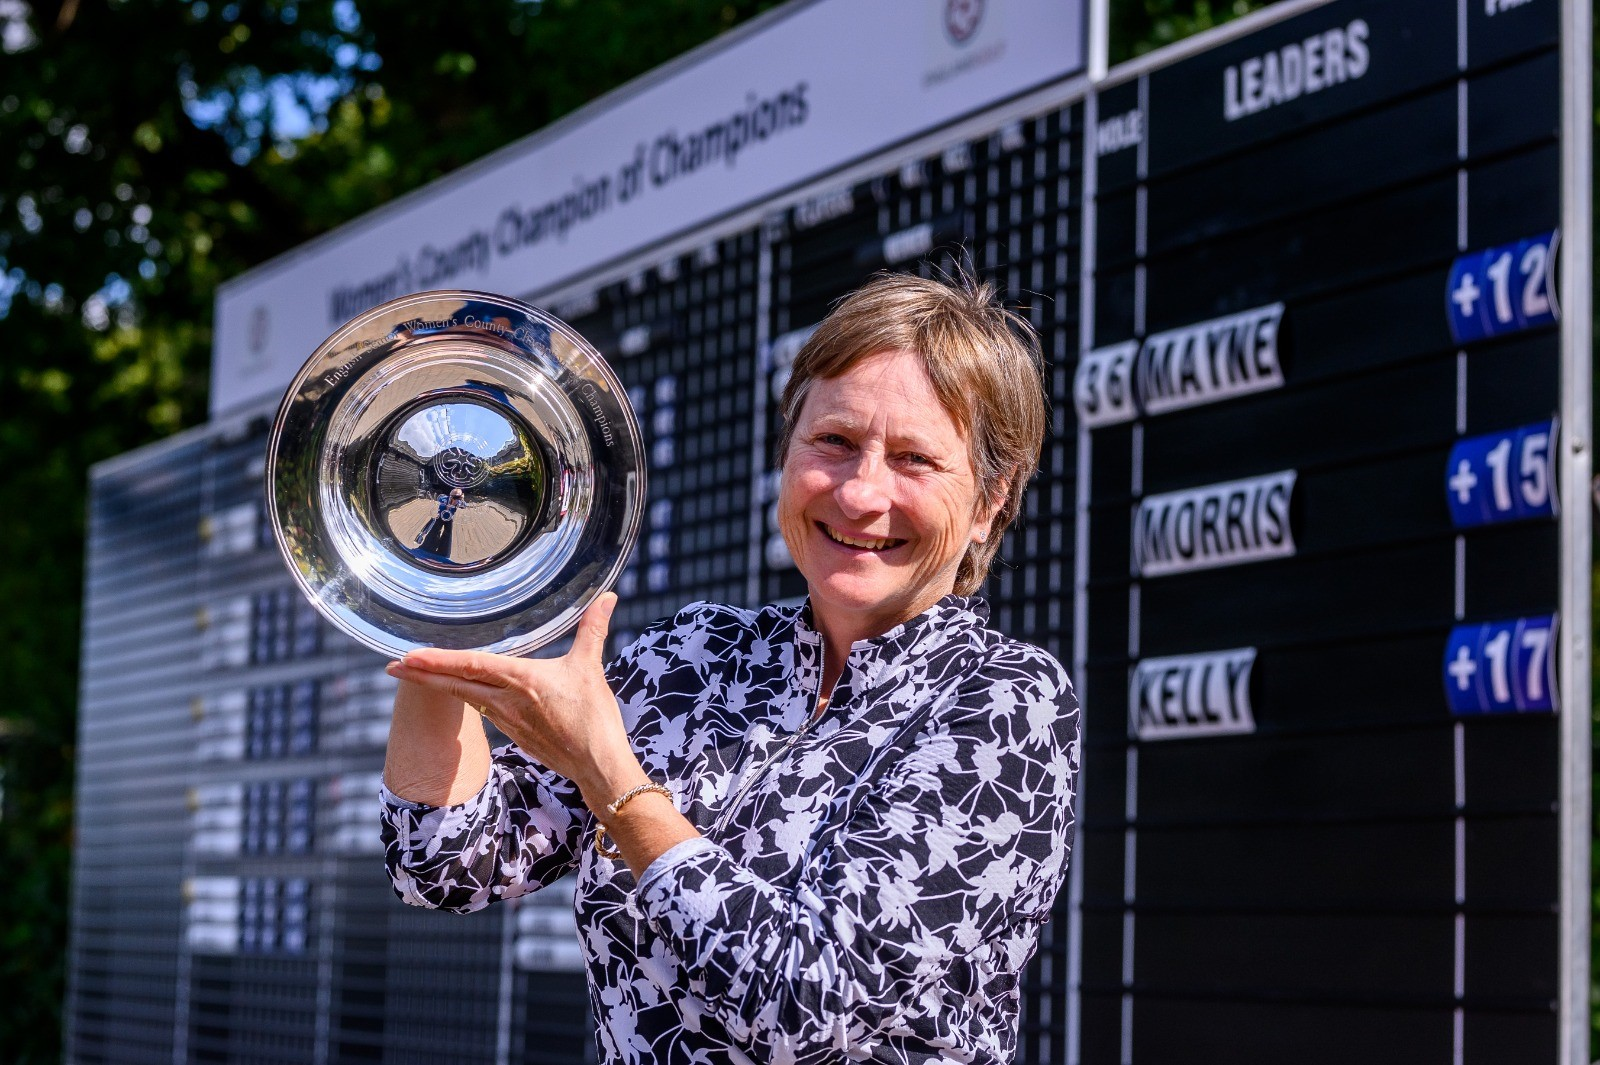 Amanda Mayne crowned as Senior Women's Champion of Champions